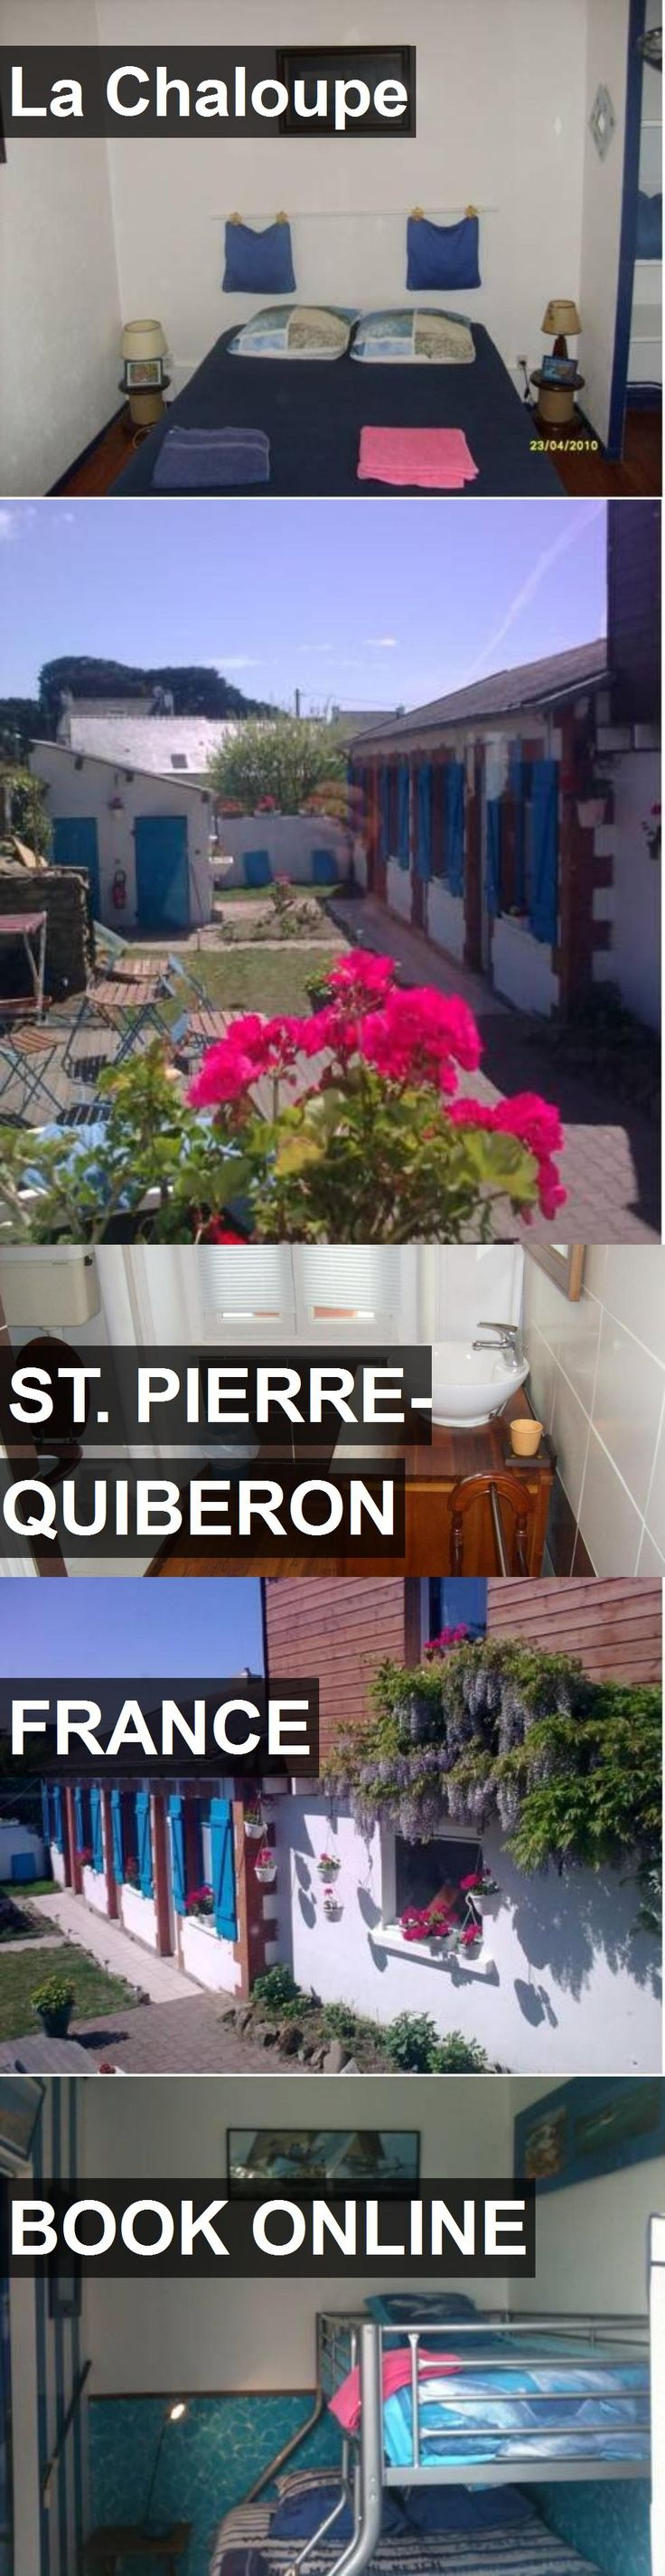 Hotel La Chaloupe in St. Pierre-Quiberon, France. For more information, photos, reviews and best prices please follow the link. #France #St.Pierre-Quiberon #hotel #travel #vacation